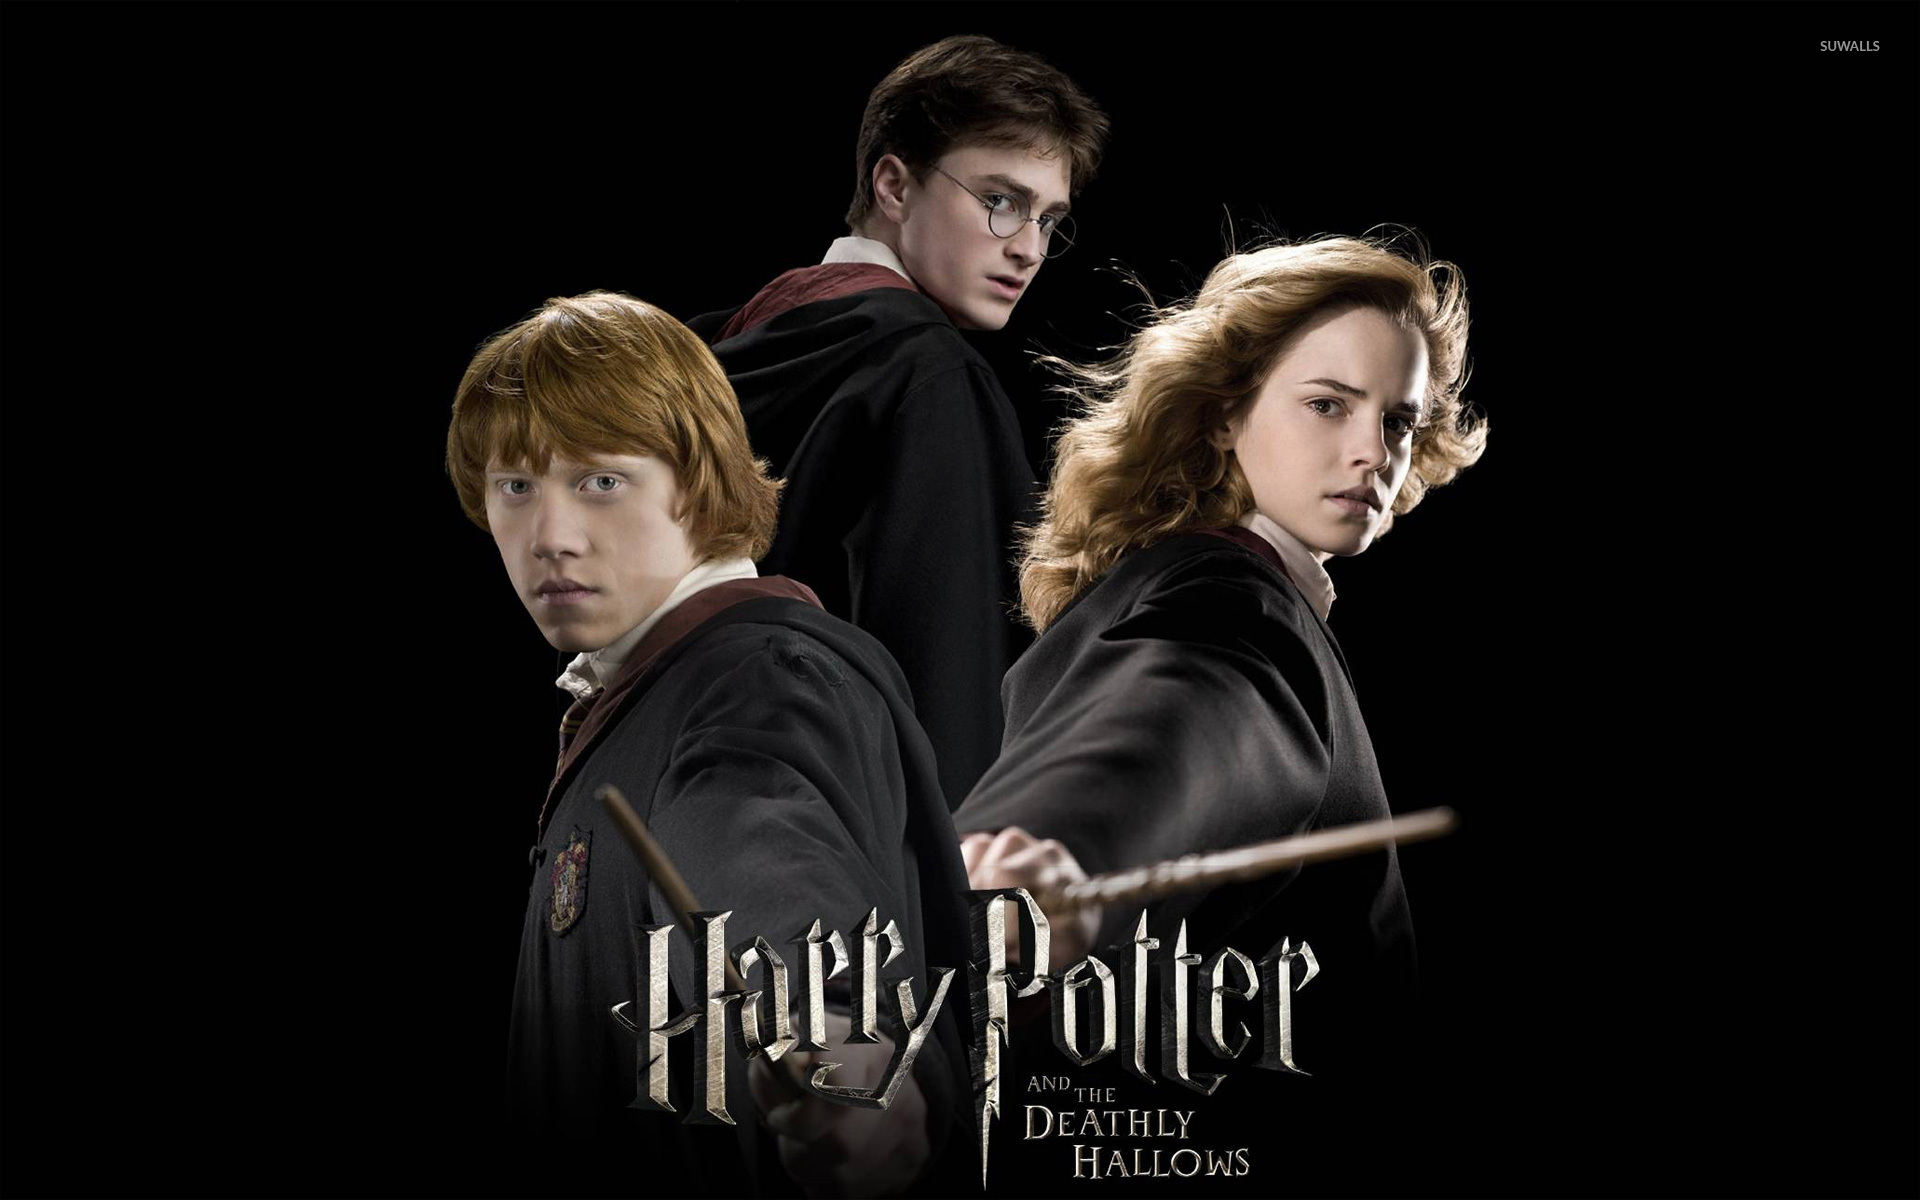 Harry Potter And The Deathly Hallows Wallpaper Harry